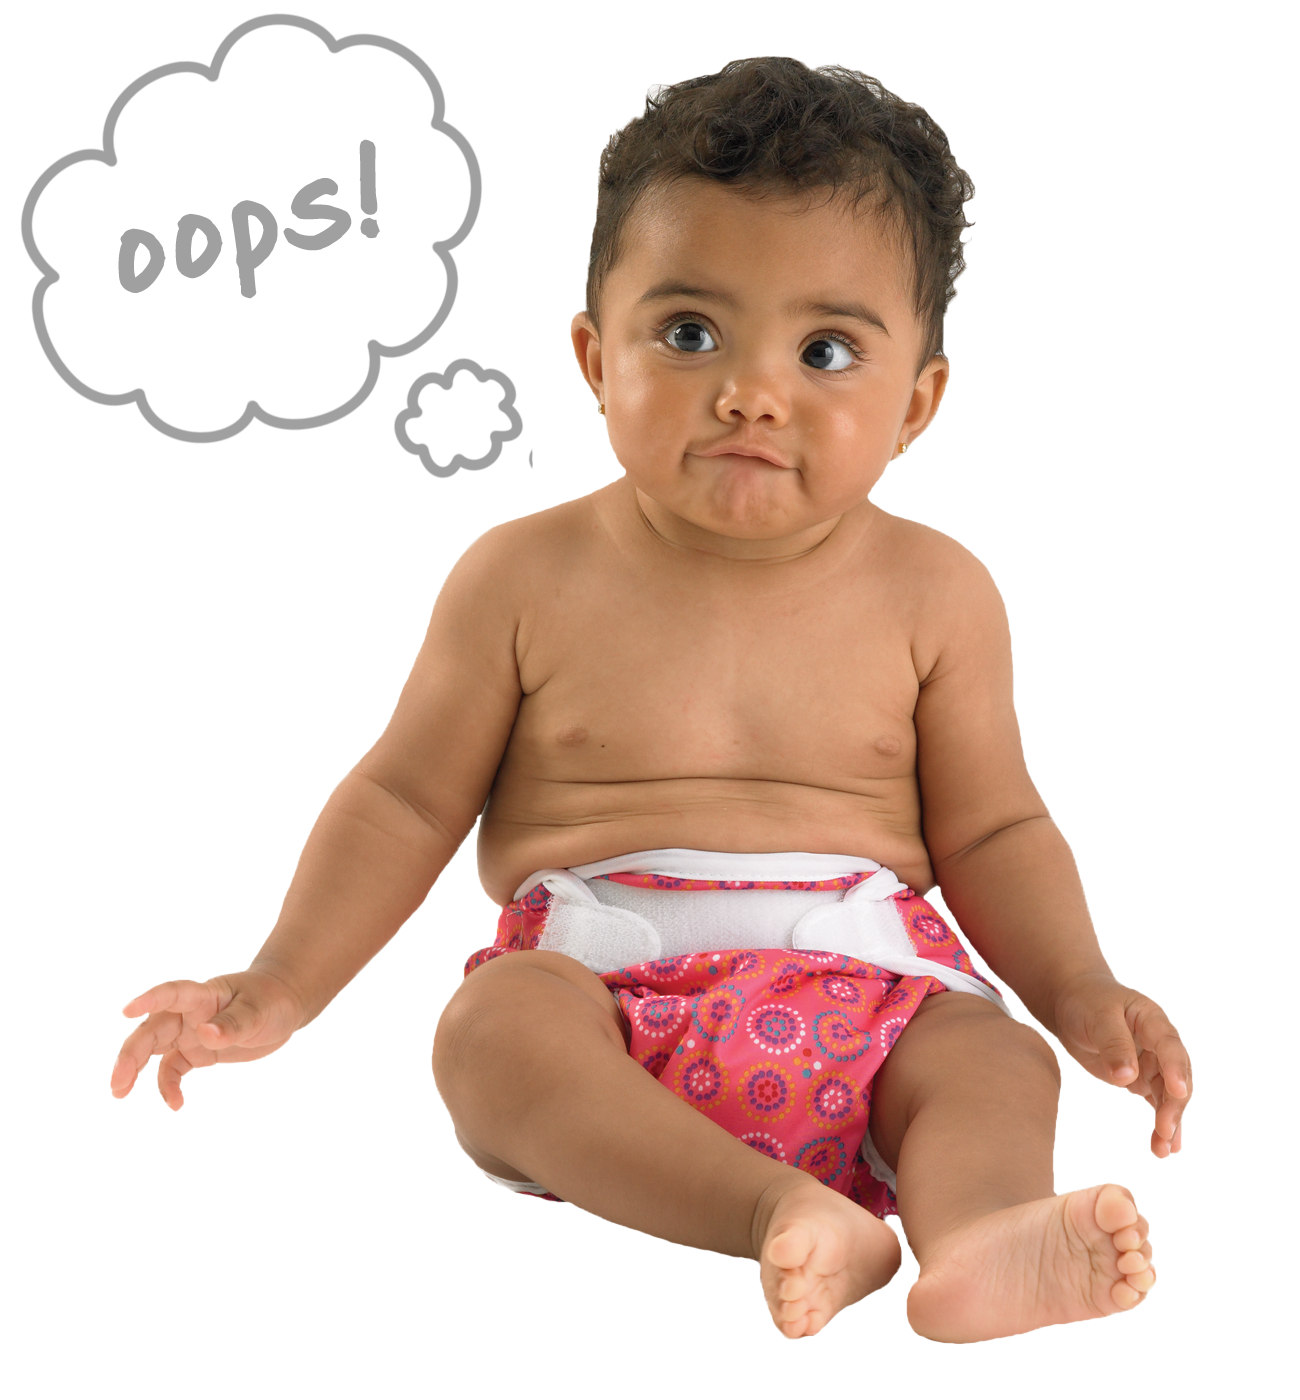 Pin on Cloth Diaper Washing and Care